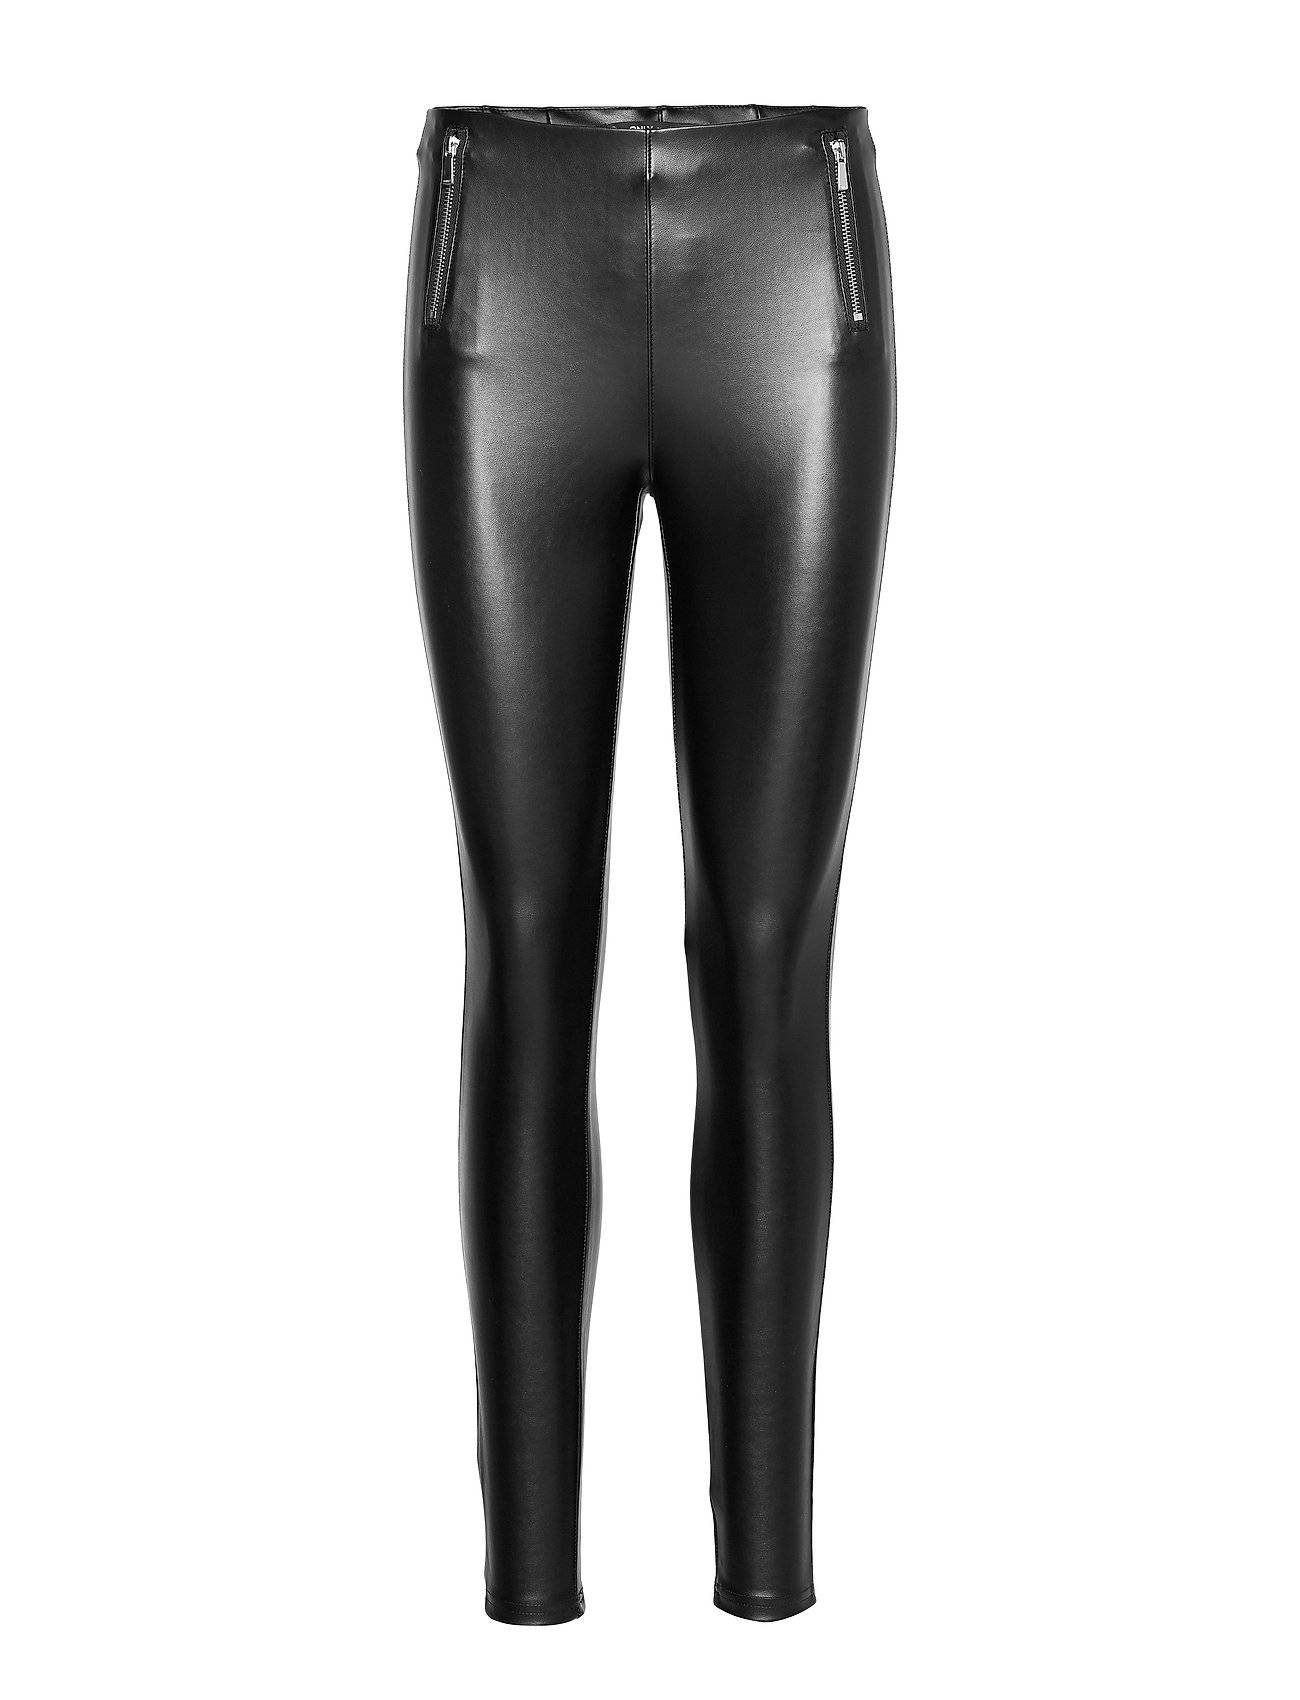 Image of ONLY Onltia Mw Pu Legging Pnt Leather Leggings/Housut Musta ONLY